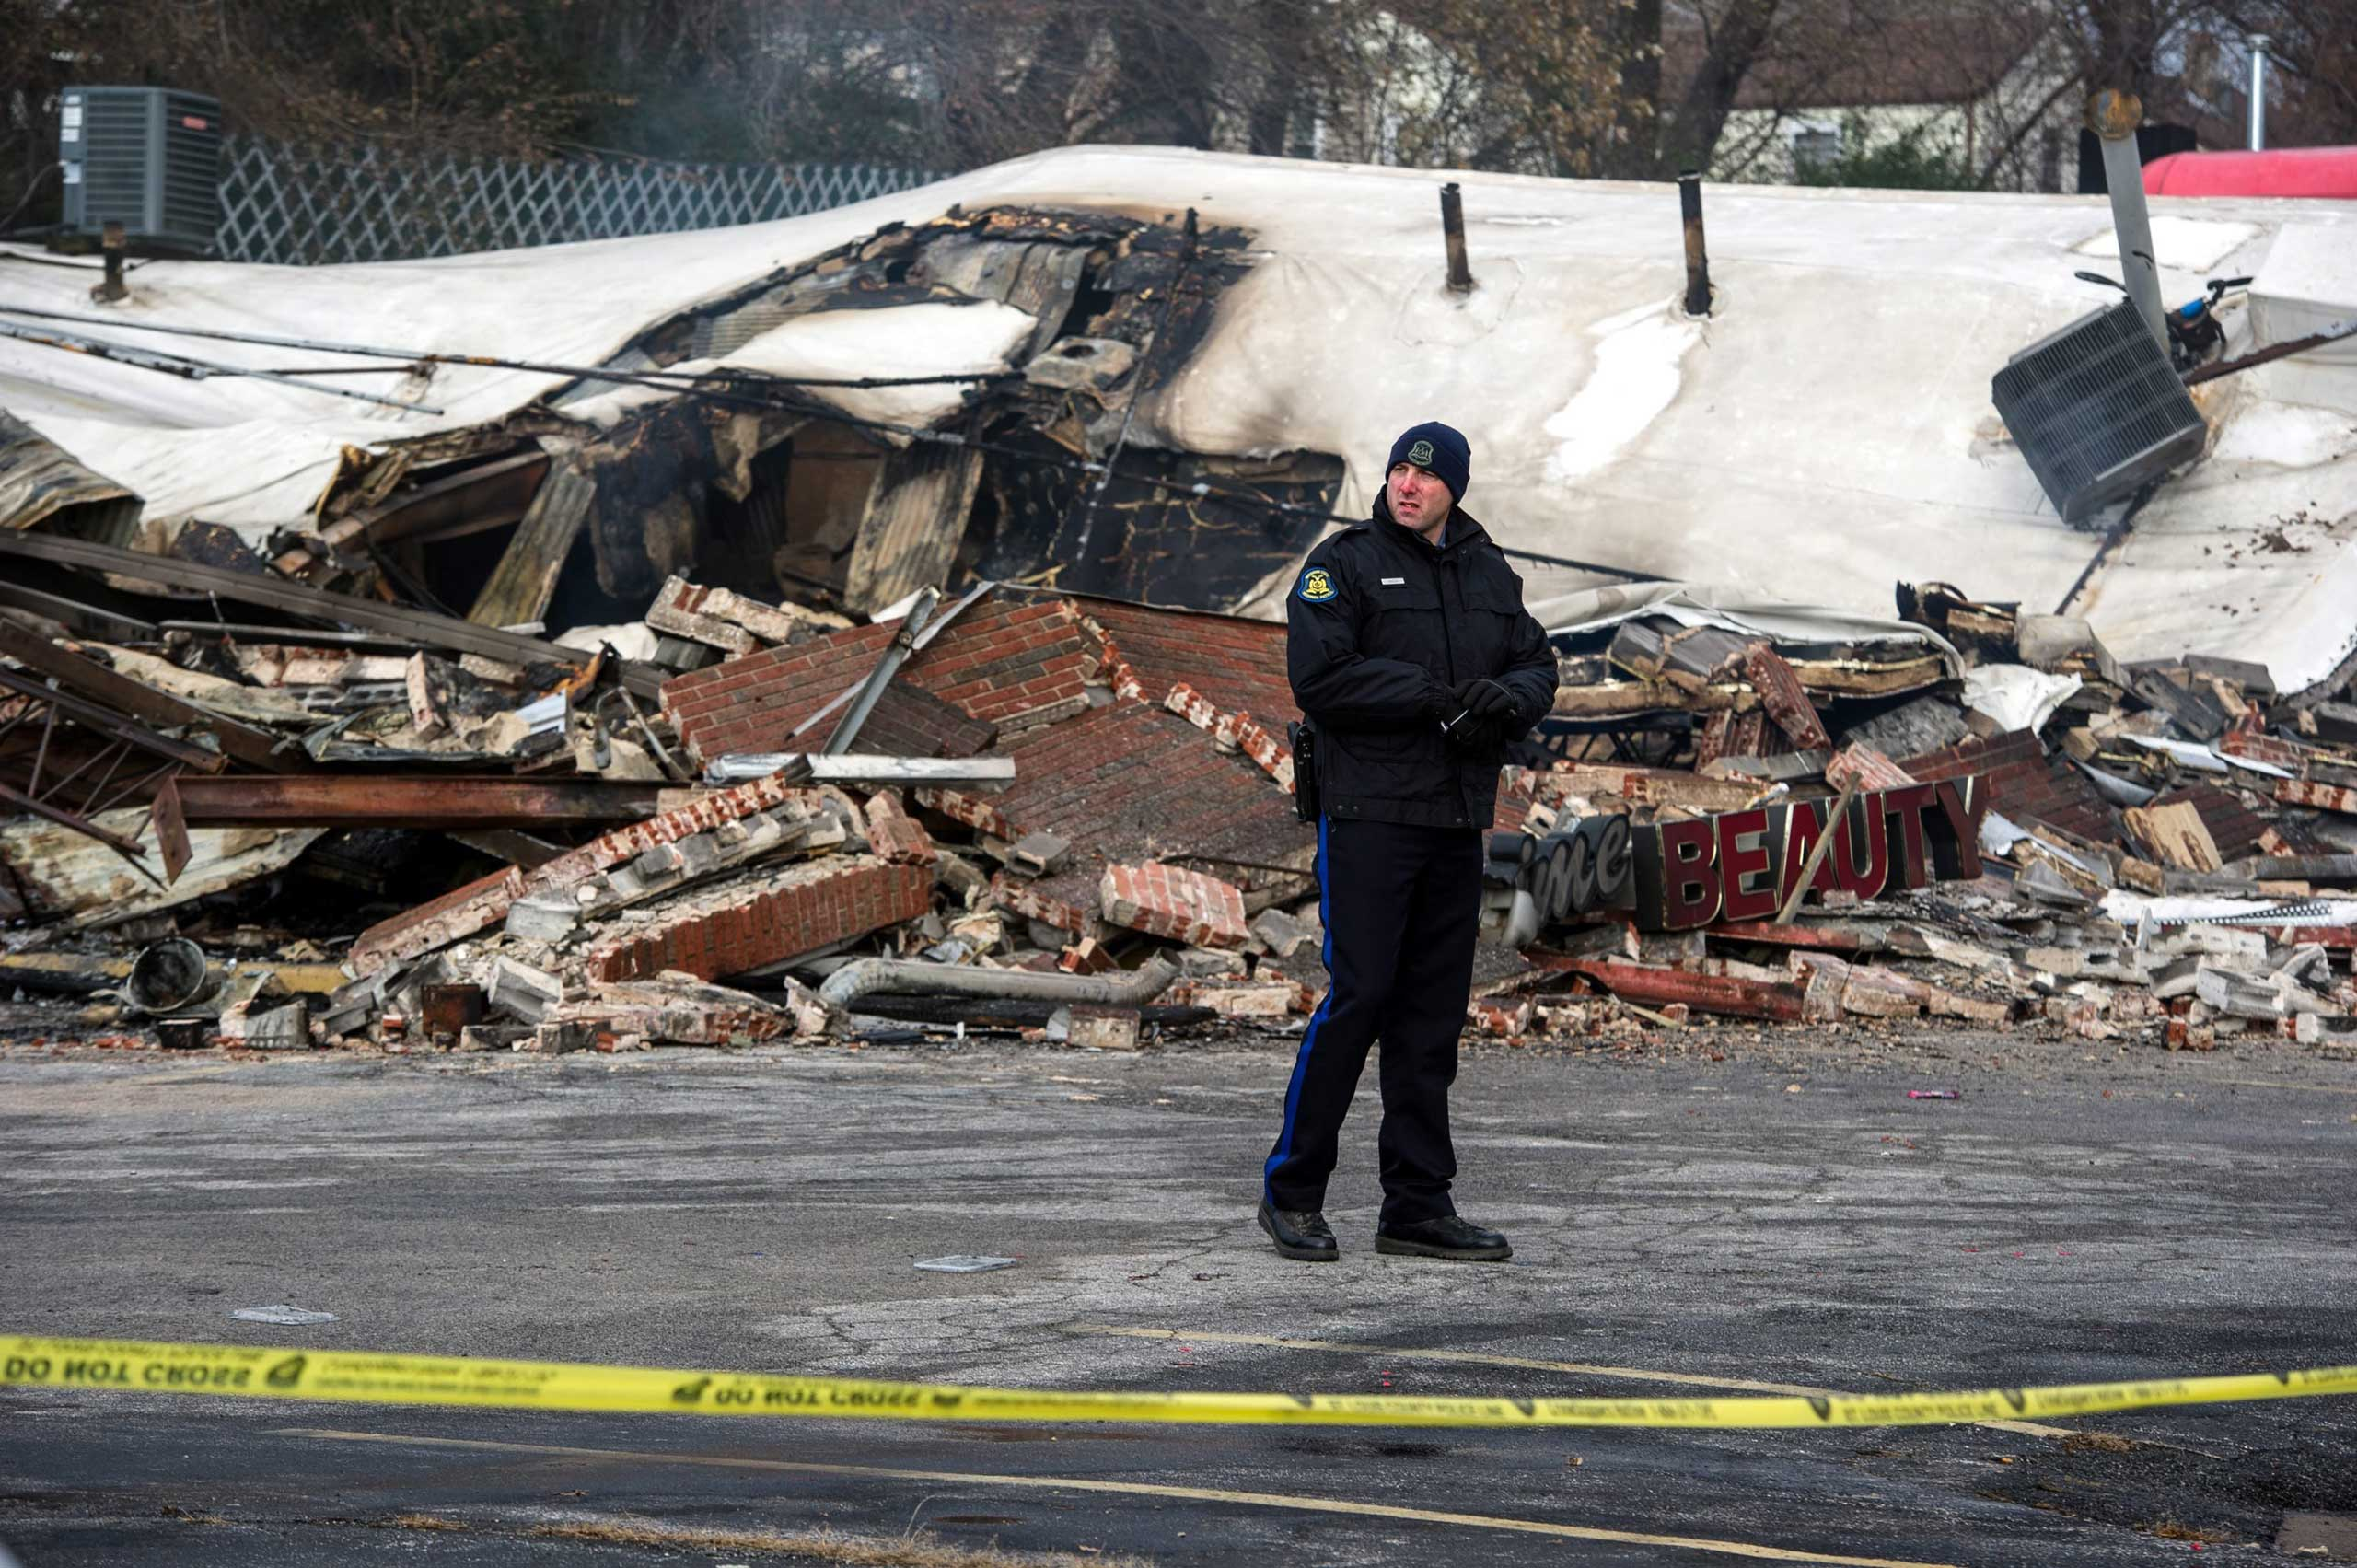 A policeman stands near one of the burnt businesses on West Florissant Avenue, which is closed for police investigation, in Ferguson, Mo. on Nov. 25, 2014.